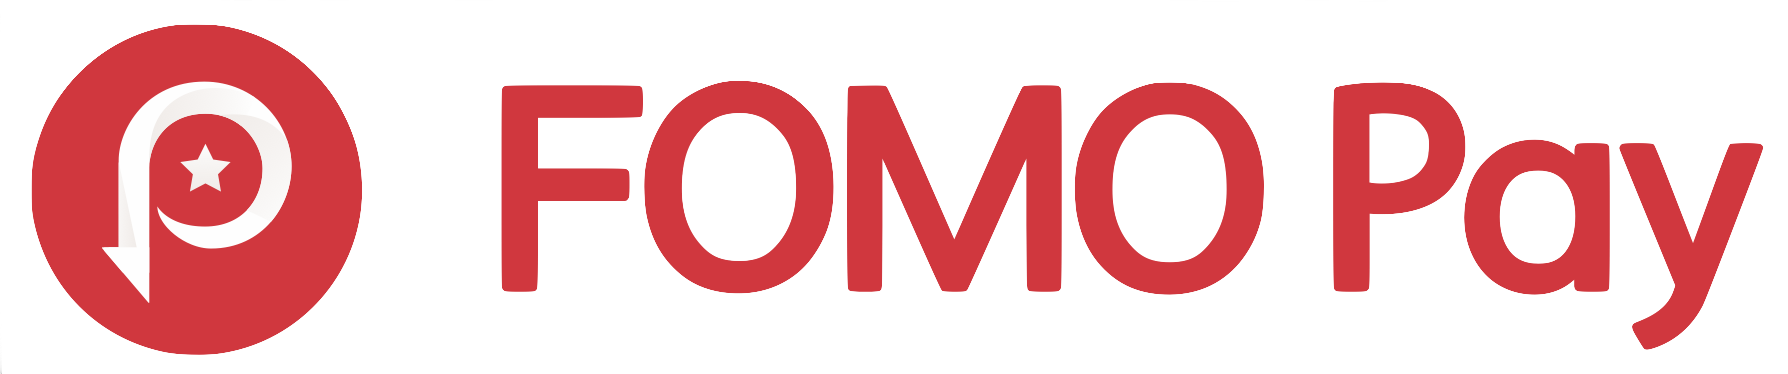 FOMO PAY PTE LTD